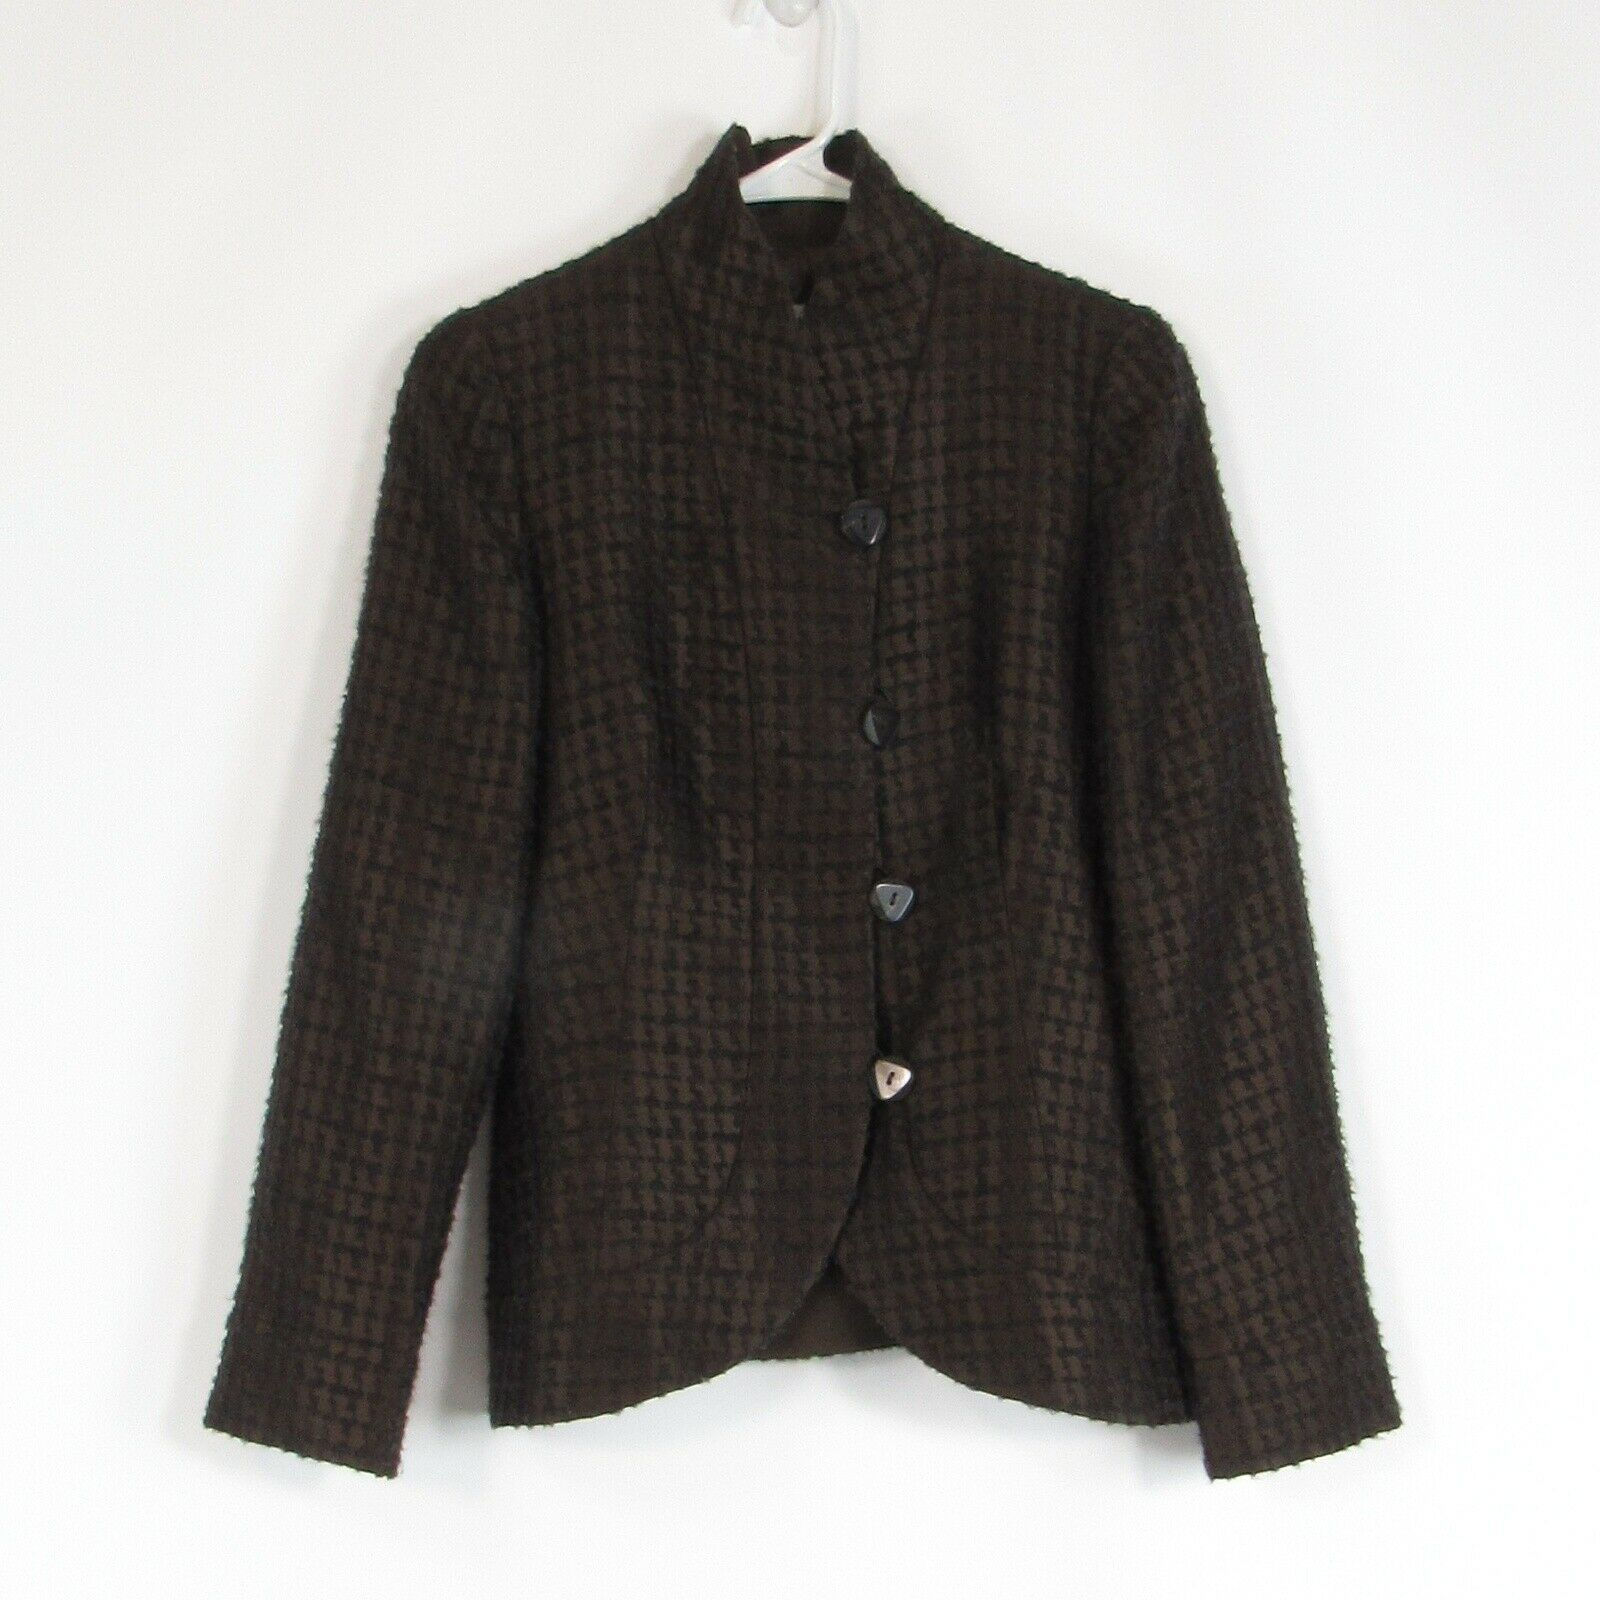 Primary image for Brown textured ARMANI COLLEZIONI long sleeve blazer jacket 4